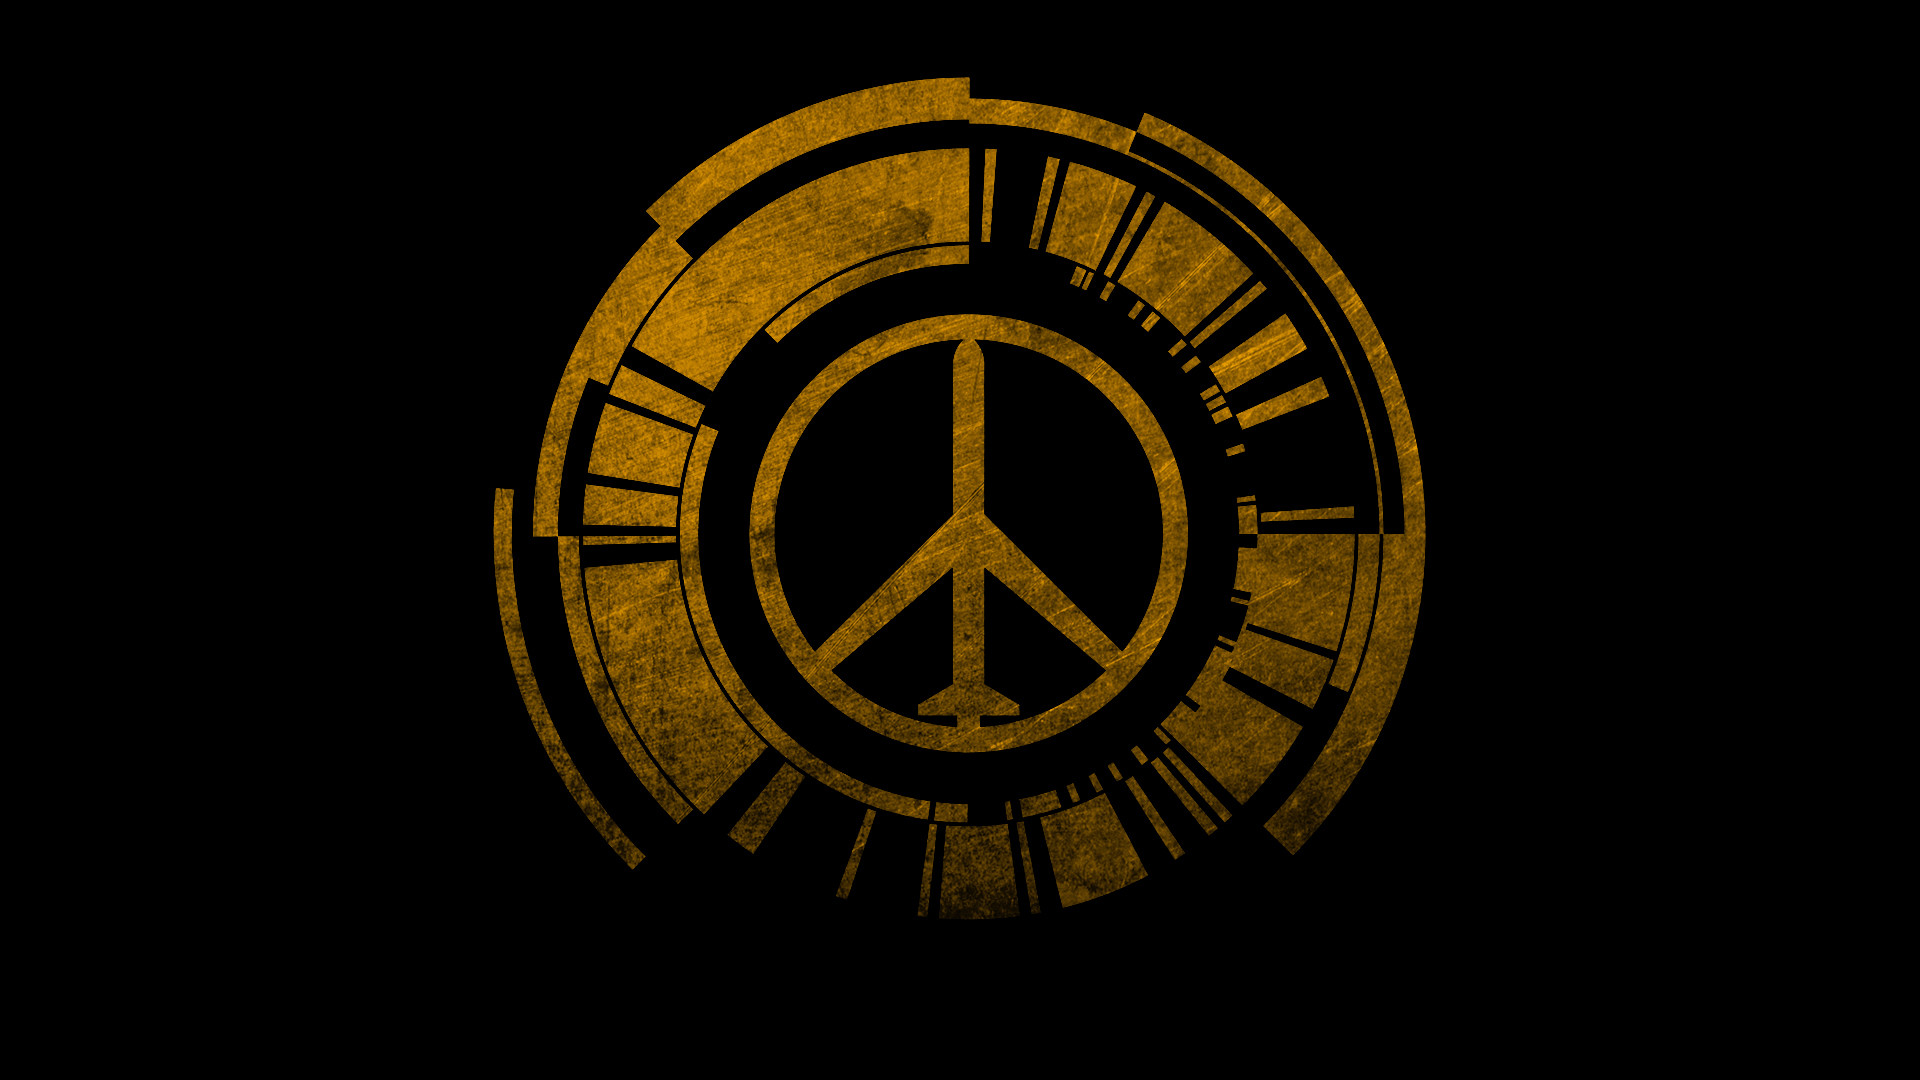 1920x1080 Metal Gear Solid Peace Walker logo wallpaper |  | 123475 |  WallpaperUP